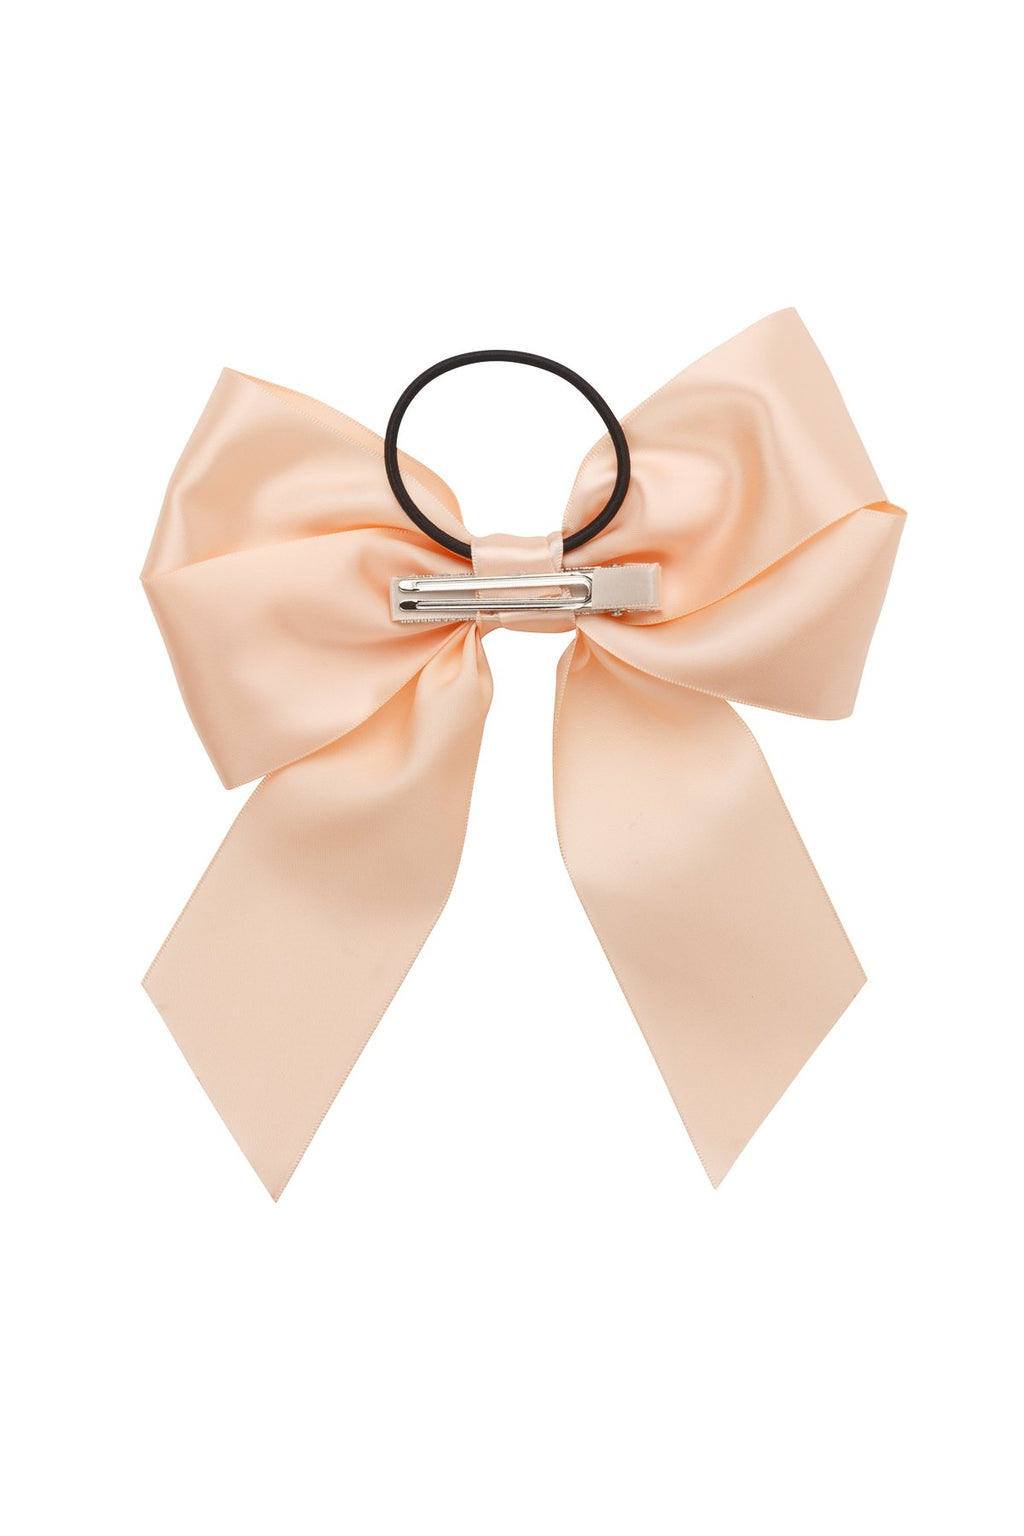 Oversized Bow Pony/Clip - Petal Peach - PROJECT 6, modest fashion